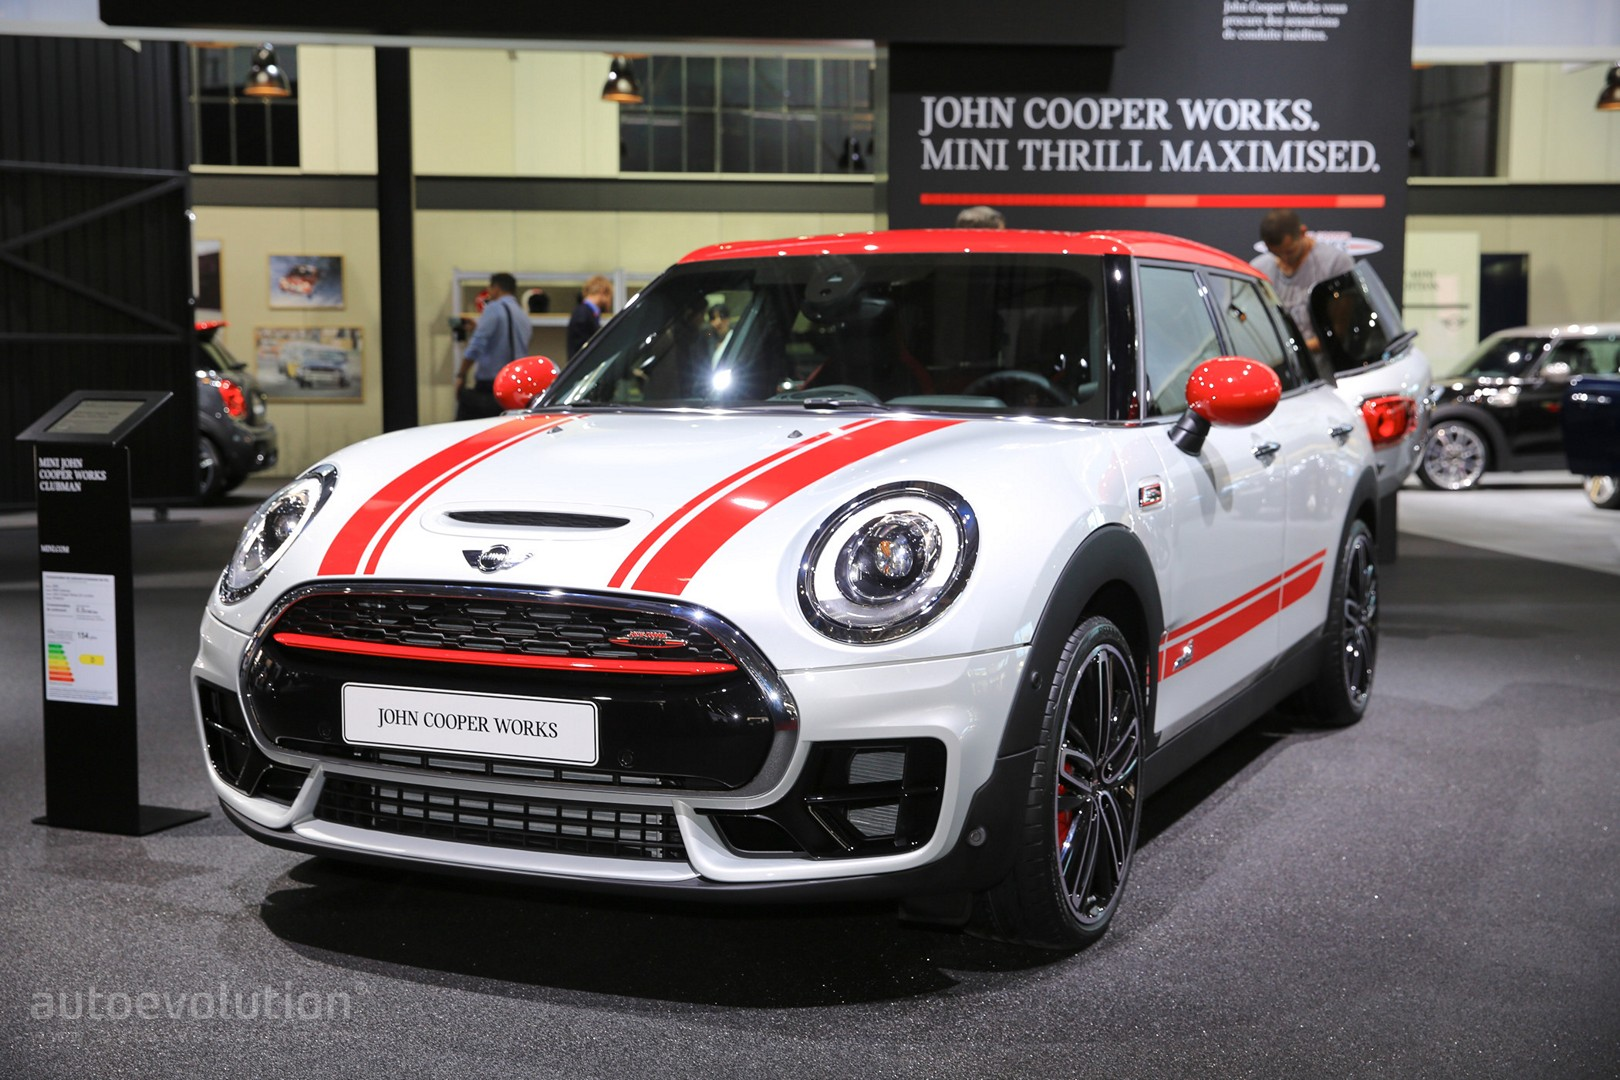 Mini Clubman John Cooper Works Arrives In Paris With Awd And 231 Hp